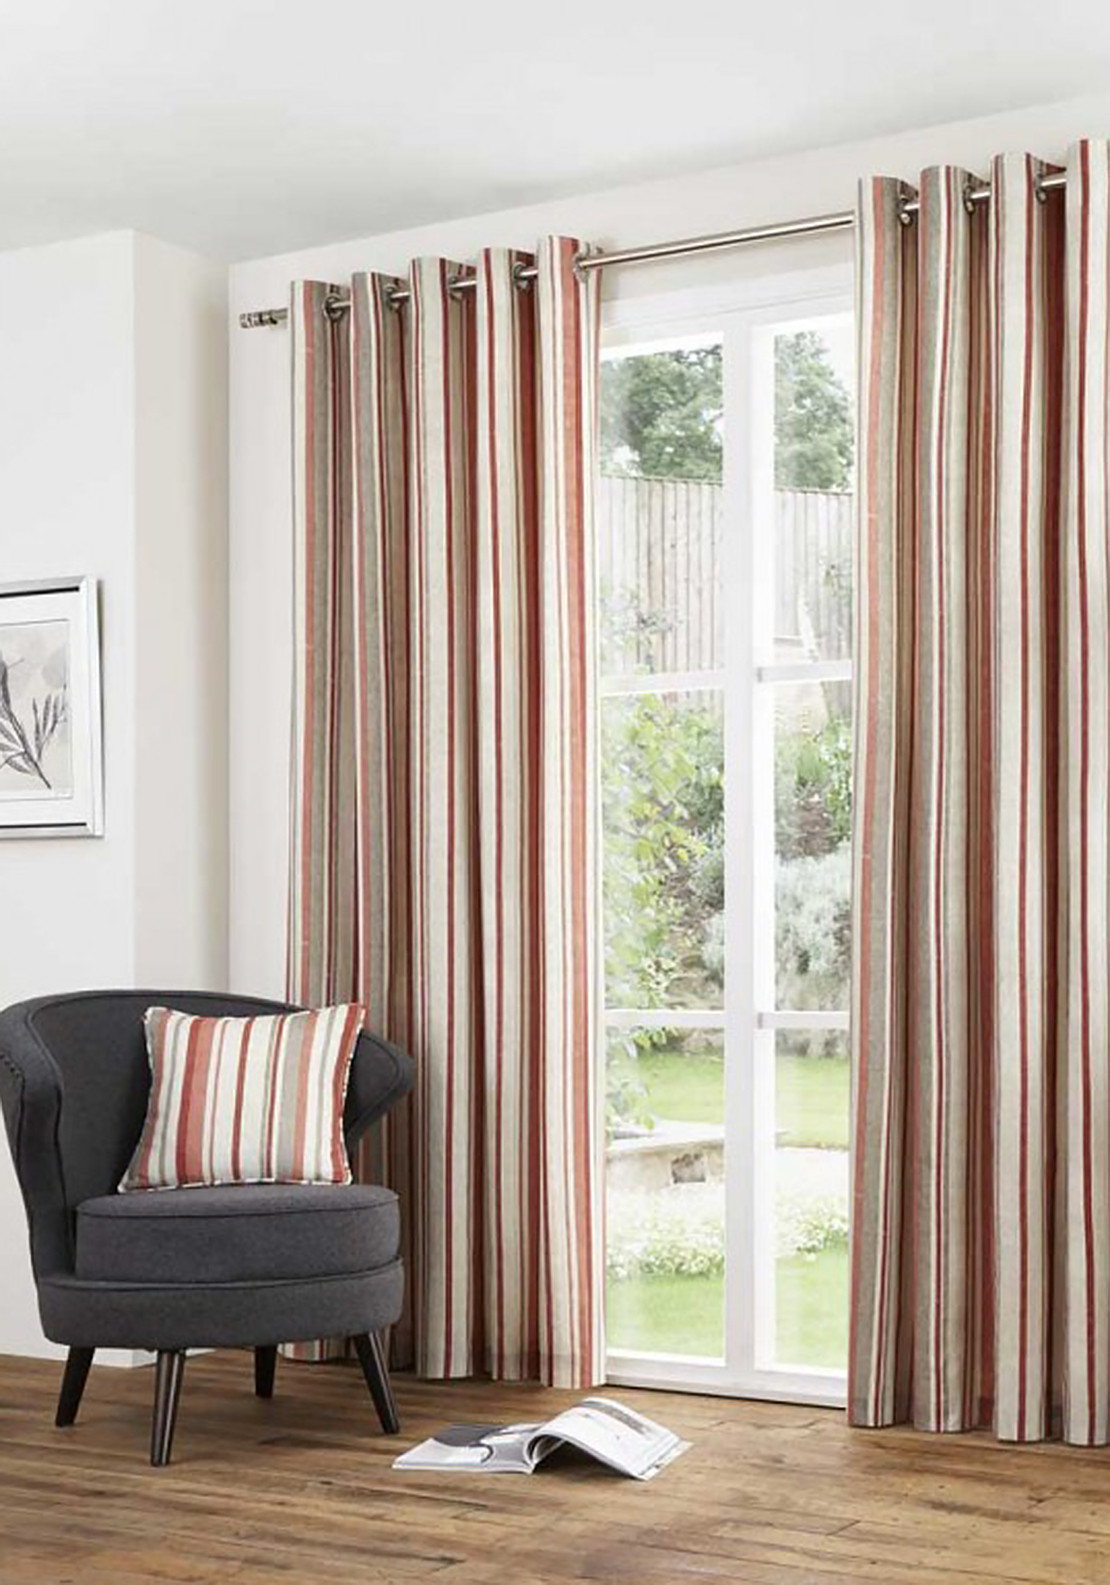 Fusion Home Furnishing Melrose Striped Fully Lined Eyelet Curtains, Spice